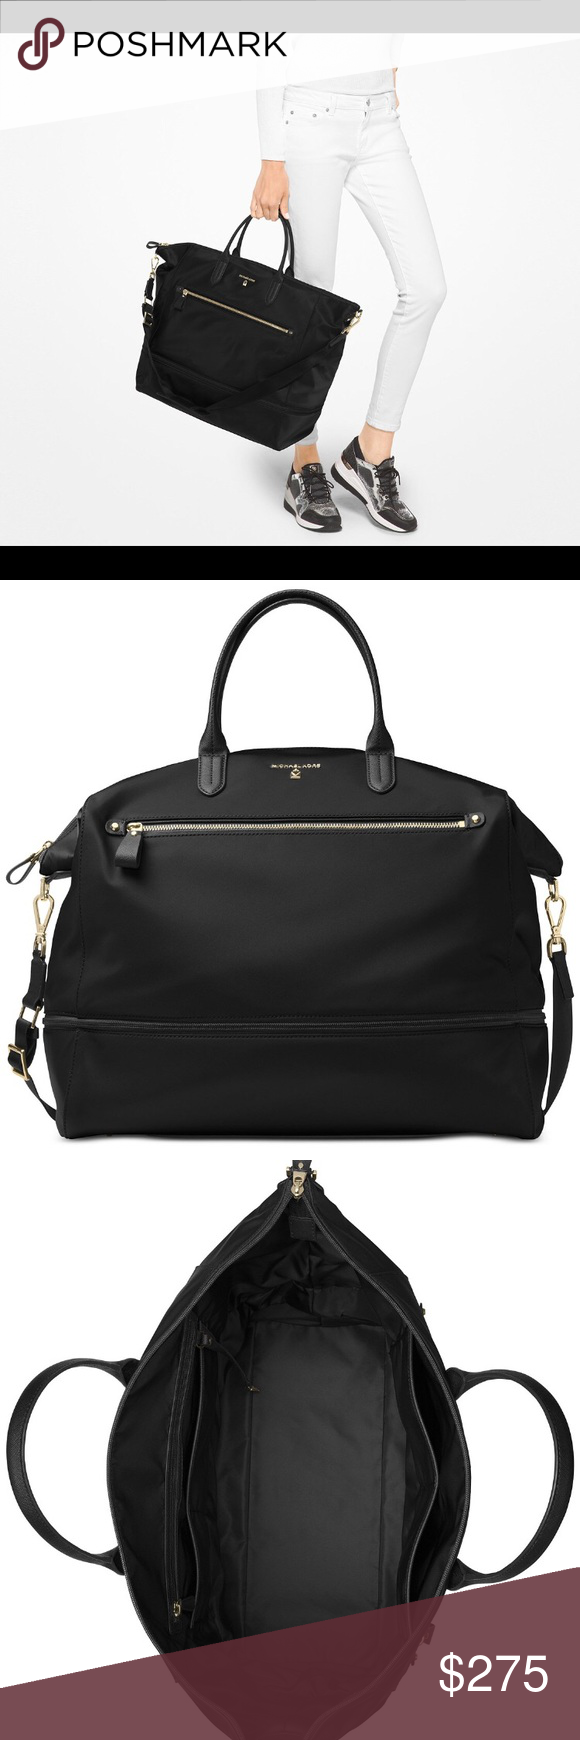 5416205a0f1b MK Extra Large Kelsey Expandable Travel Tote Easily fits 4 outfits and 2  pairs of shoes. Great Carry On Michael Kors Bags Travel Bags